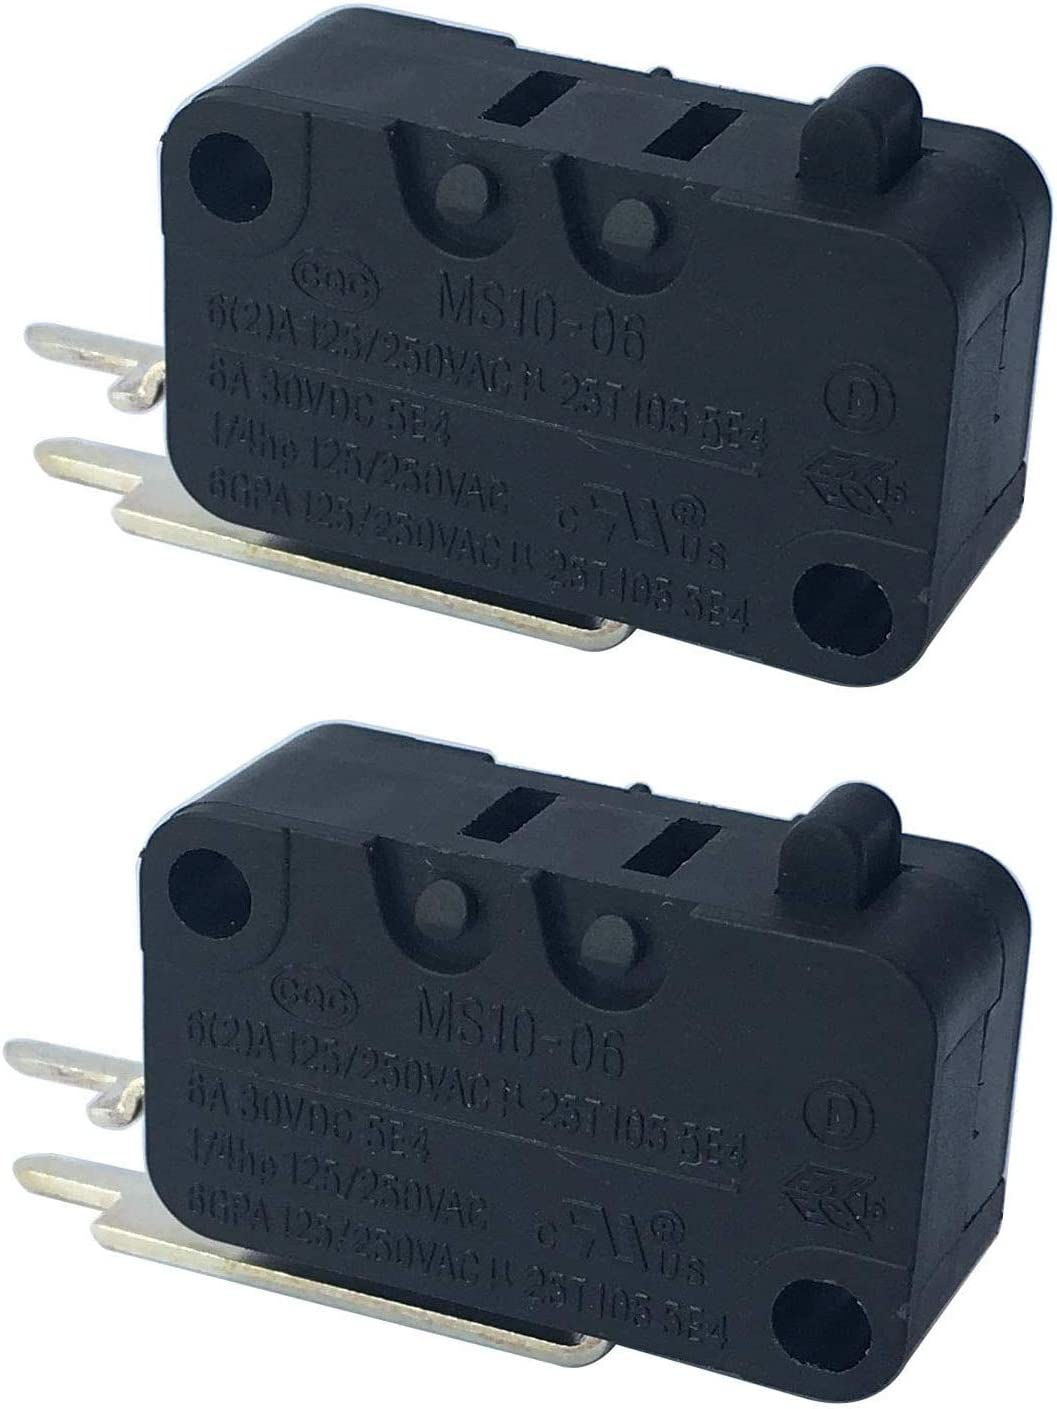 W10195039 Dishwasher Float Switch (Pack of 2) for Whirlpool KitchenAid Kenmore Maytag Dishwasher WPW10195039 MS10-06 PS11750031